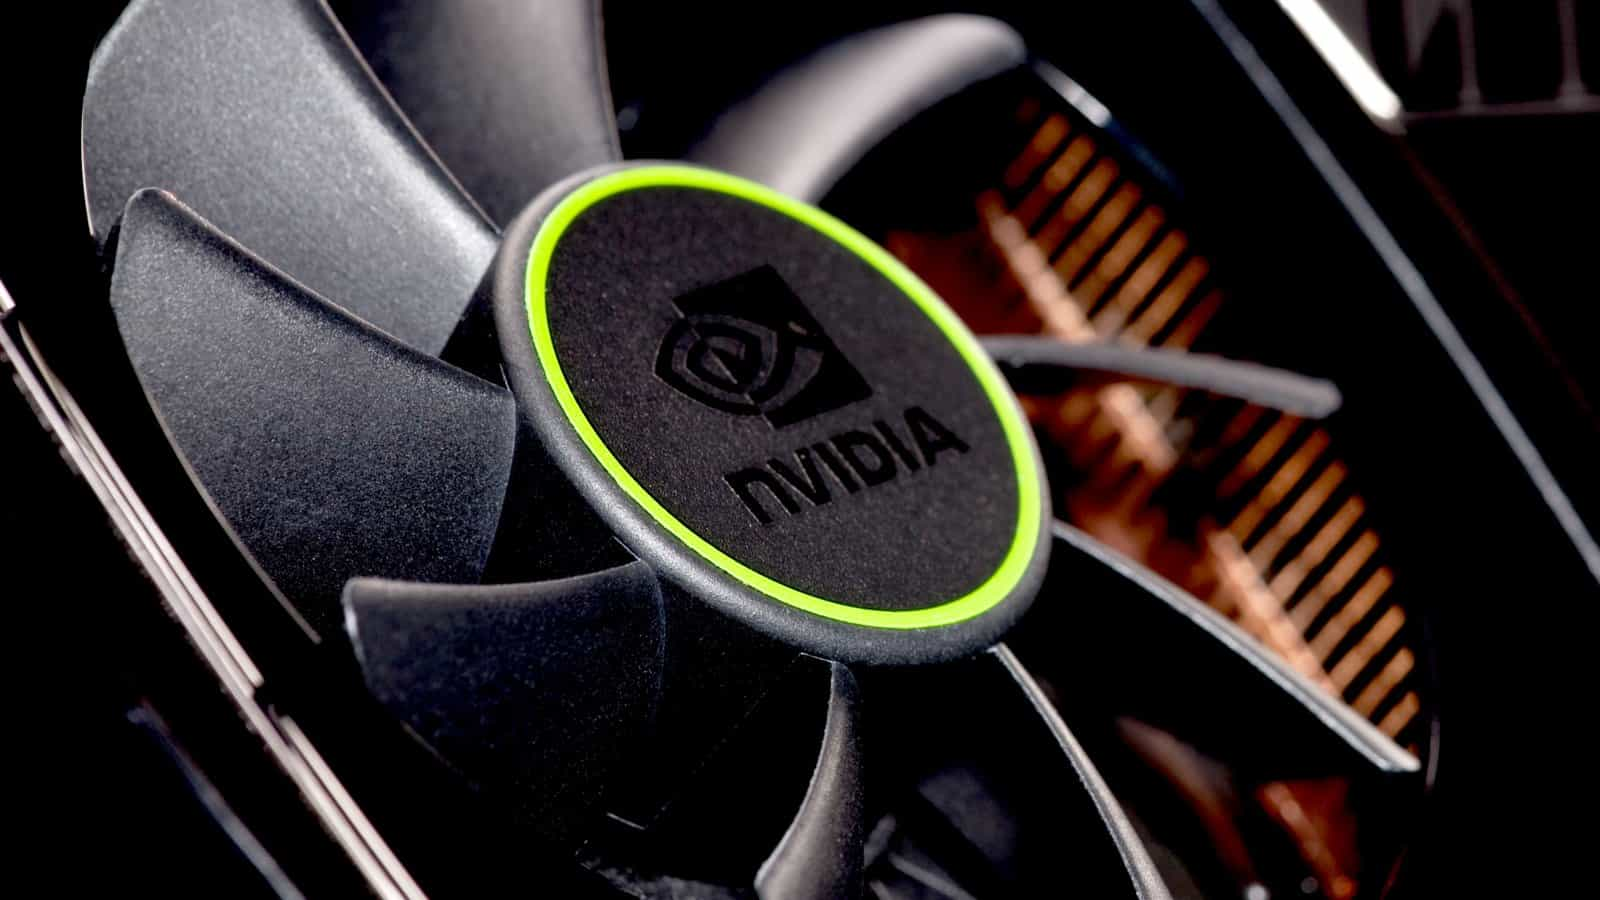 nvidia-geforce-gtx-590-detail-1600